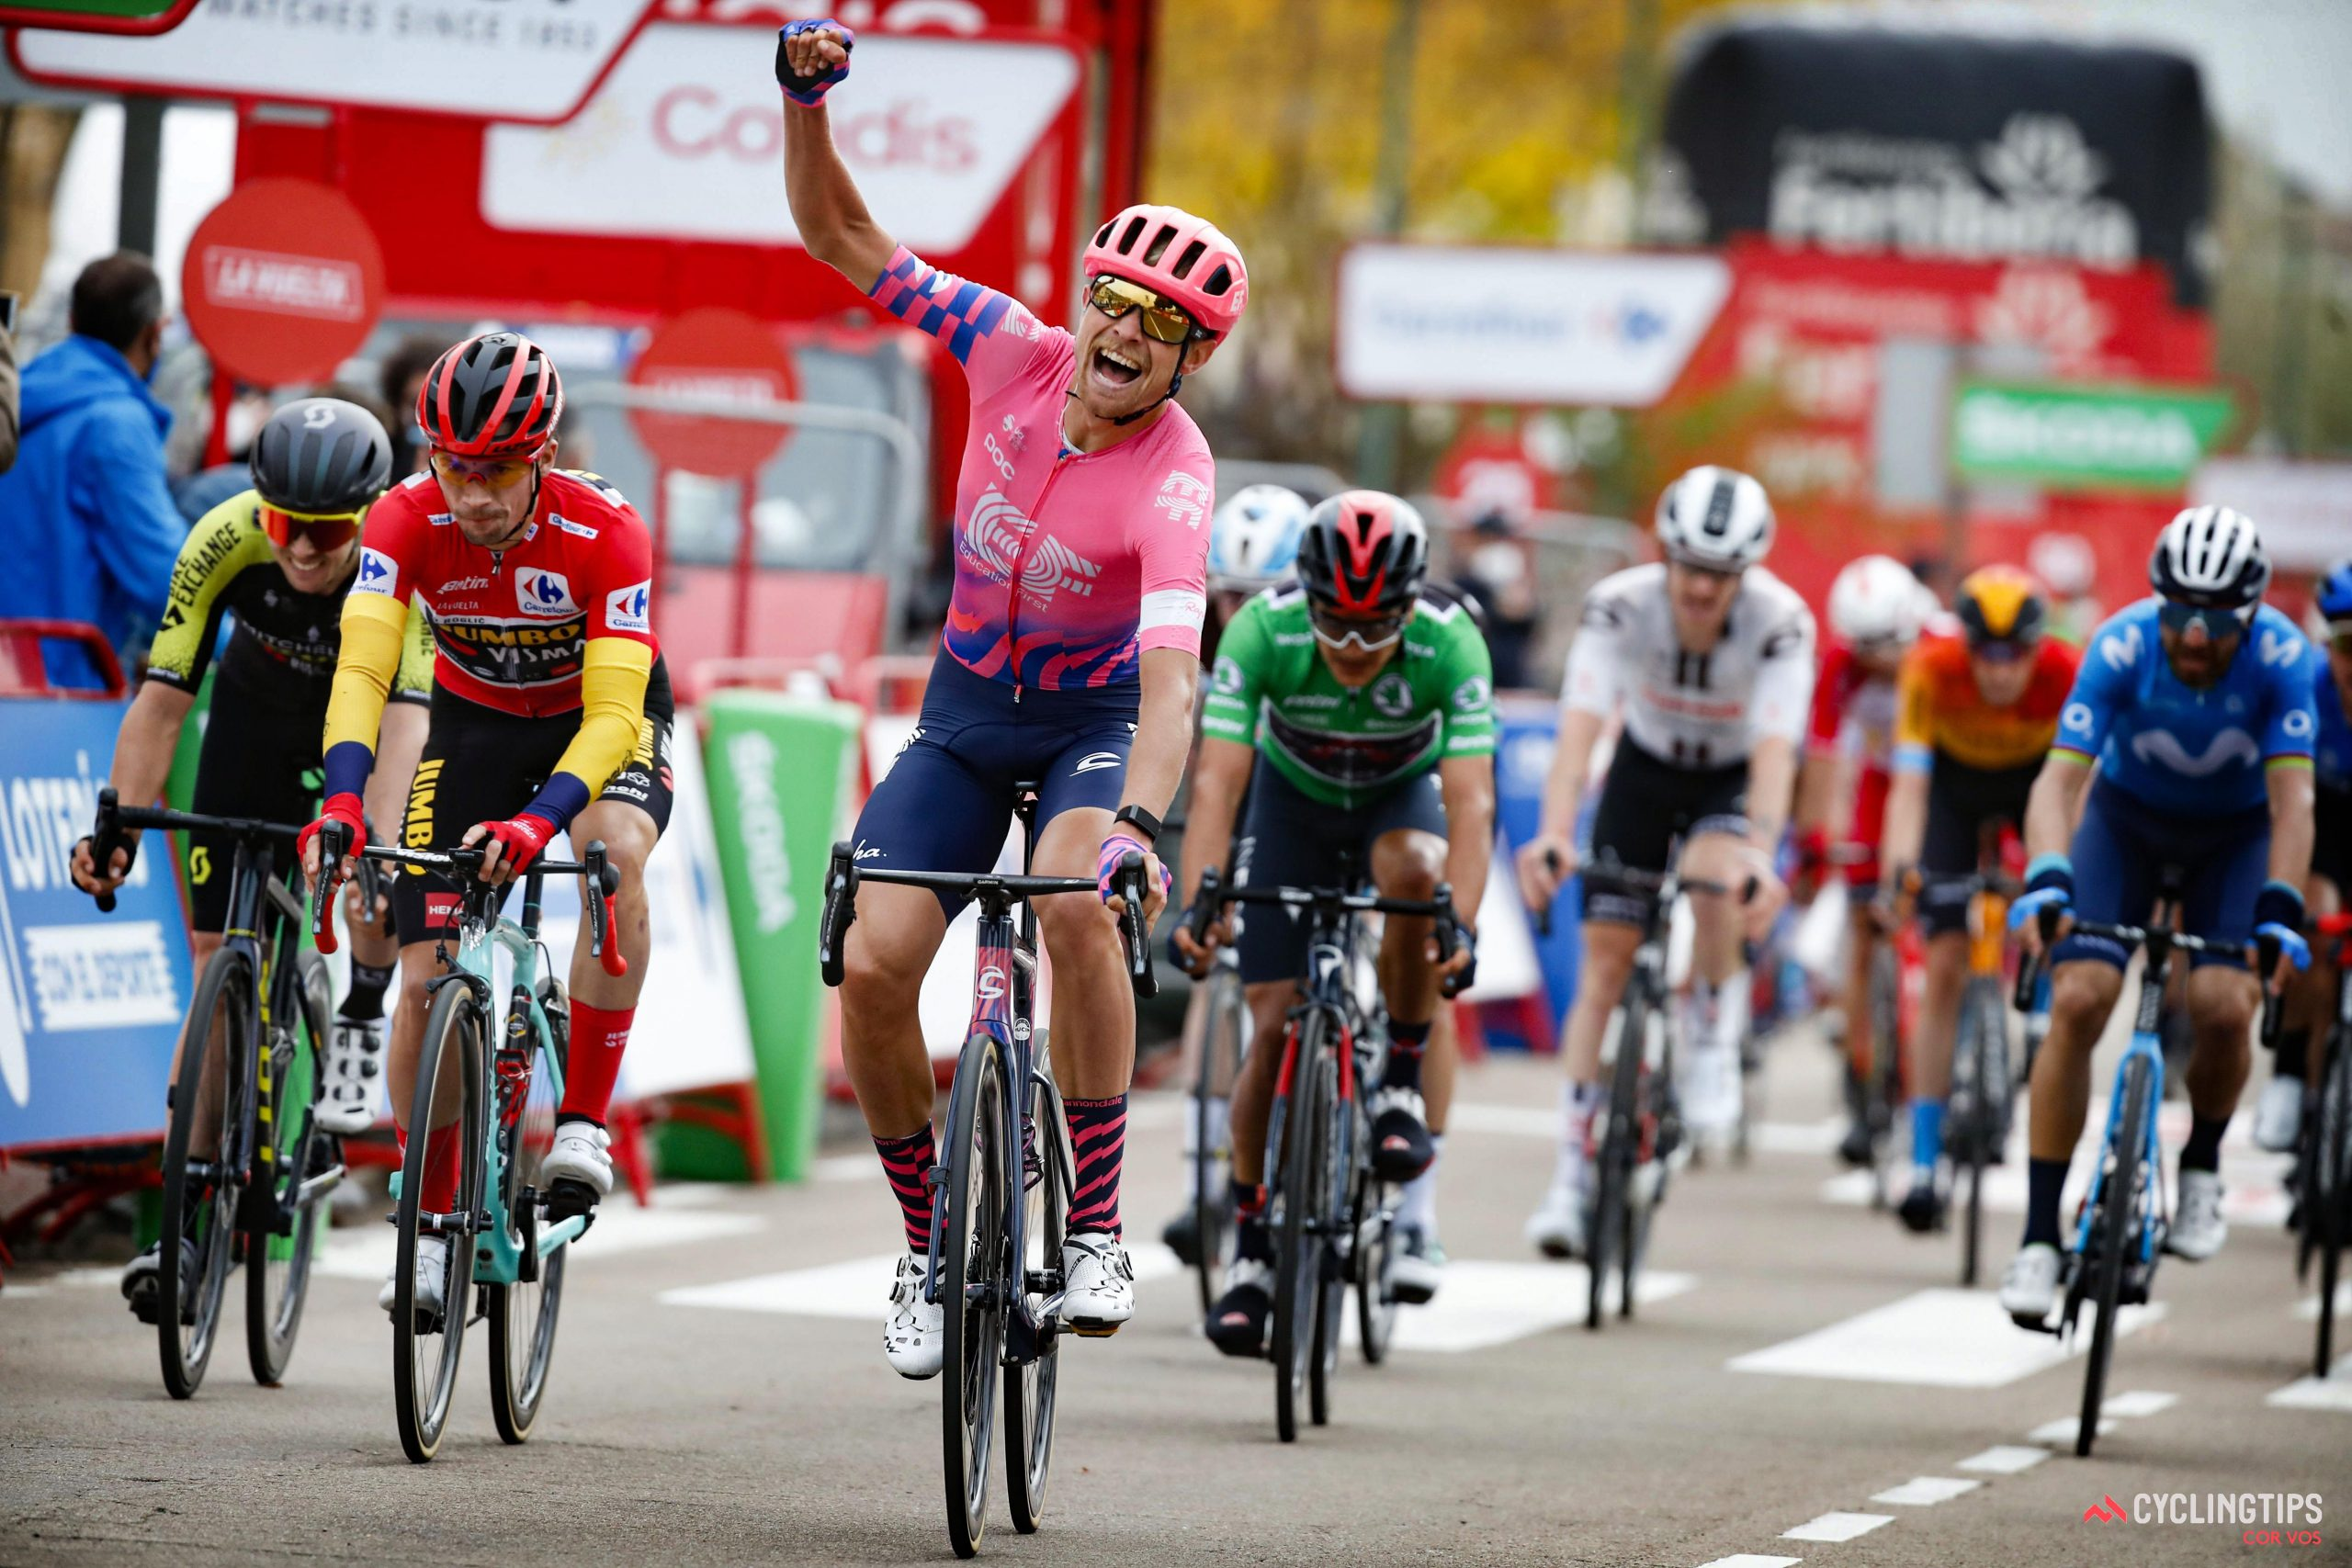 Magnus Cort wins stage 16 of La Vuelta: Daily News Digest